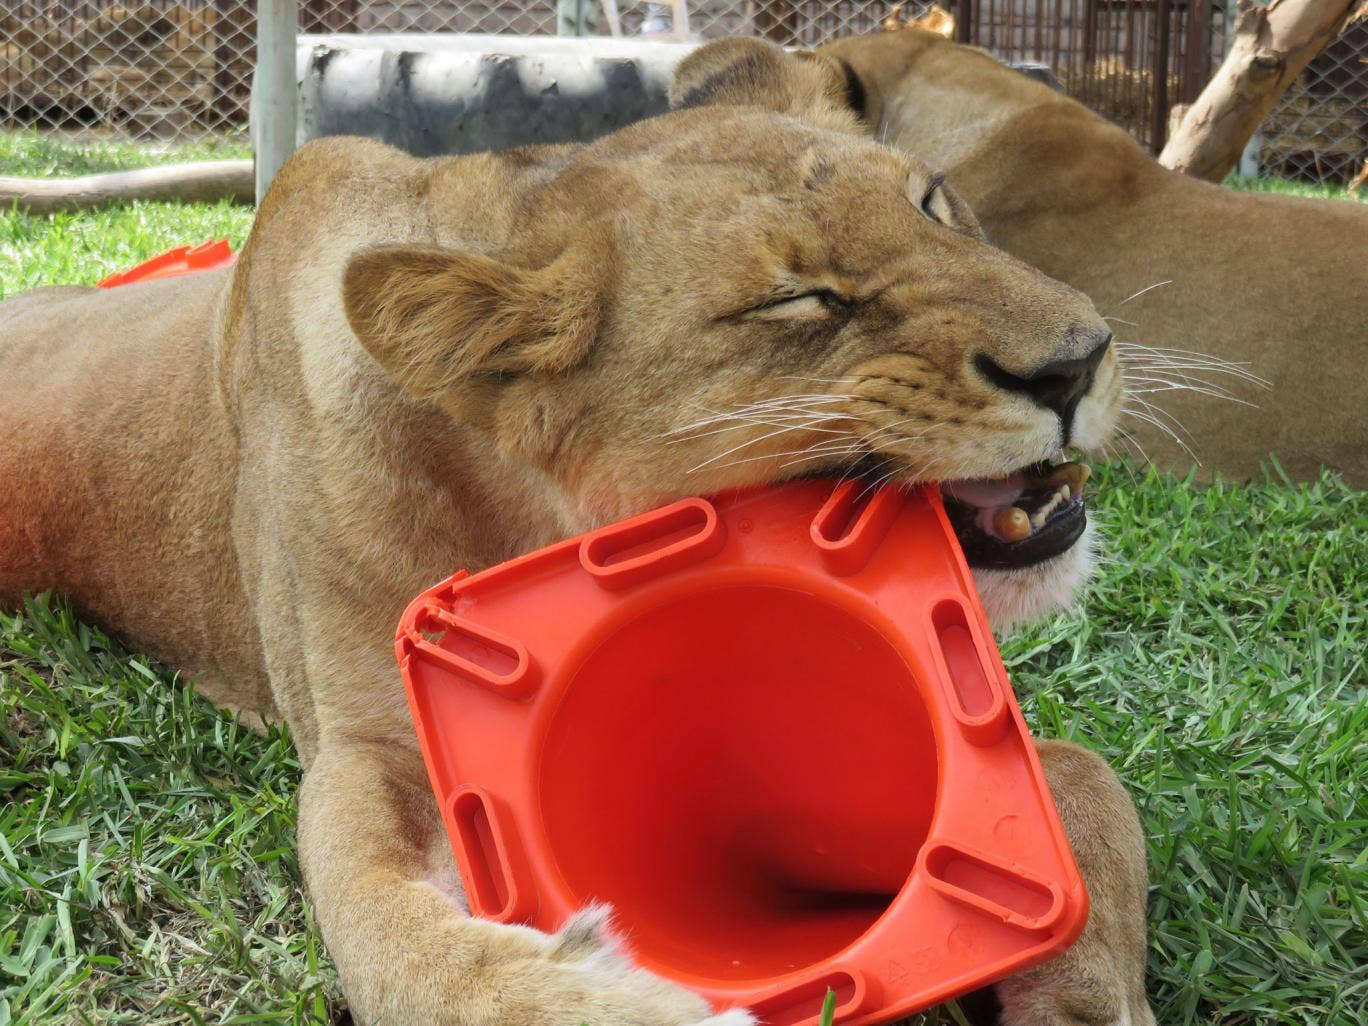 The 24 rescued lions are being microchipped at the Emoya Big Cat Sanctuary in Limpopo province